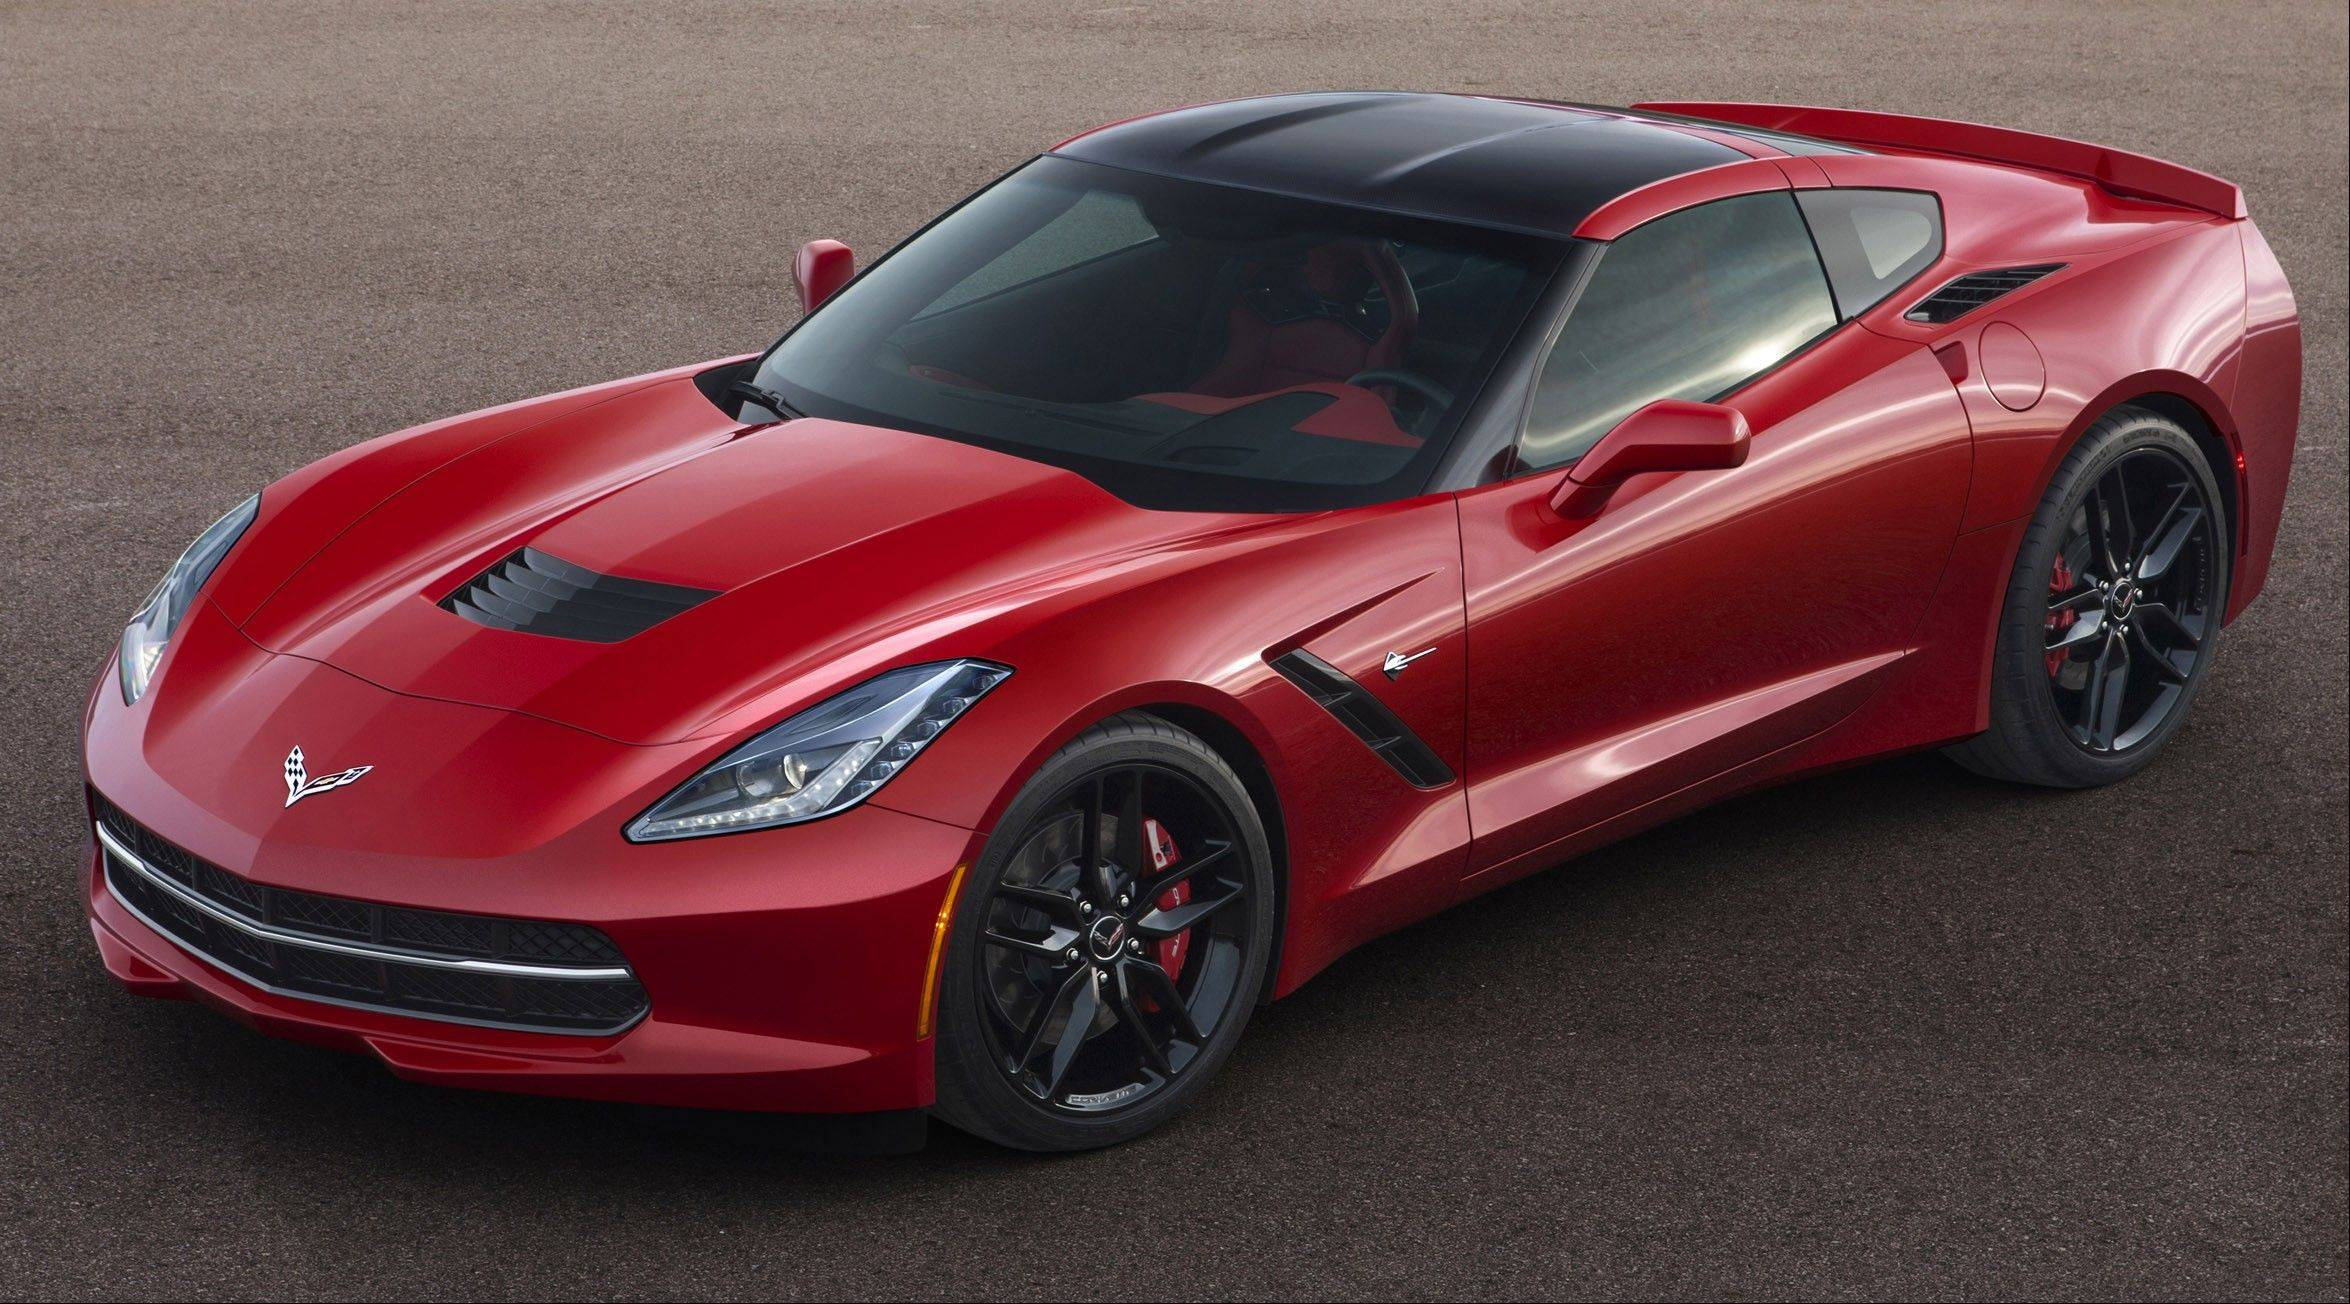 The 2014 Chevrolet Corvette Stingray has a sophistication and finesse once thought available only in cars European and prohibitively expensive.